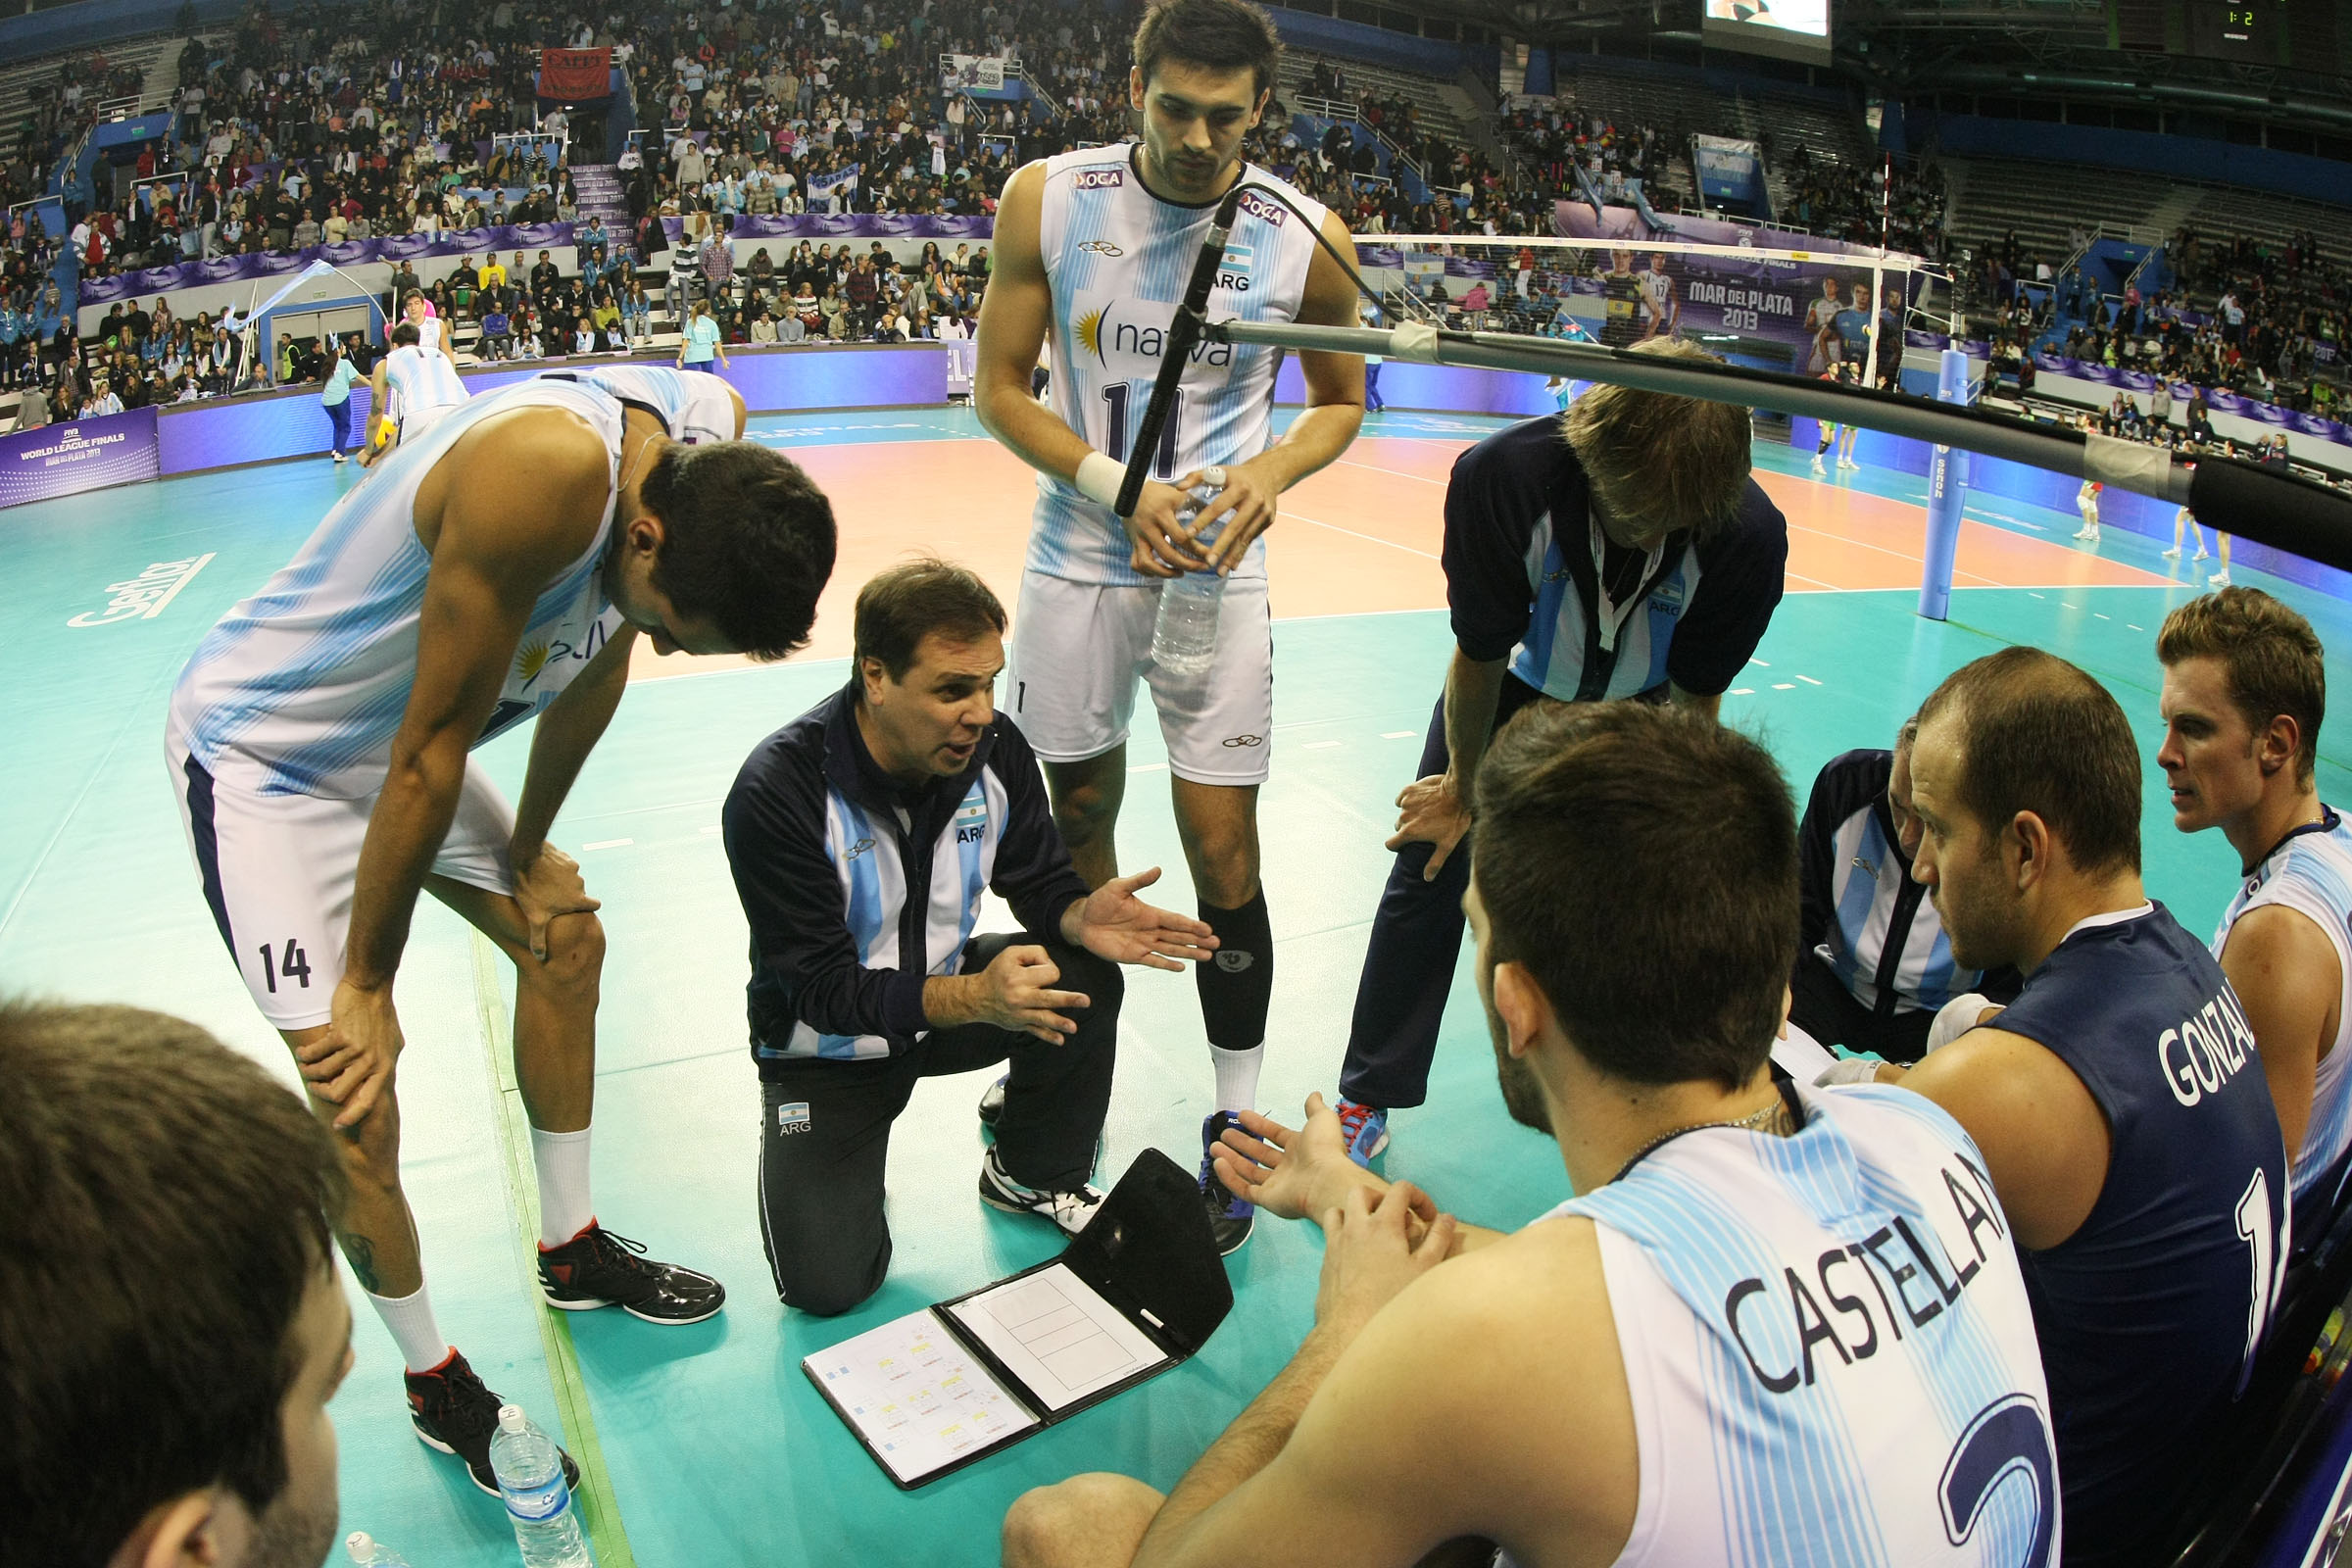 Watch How to Coach Volleyball video